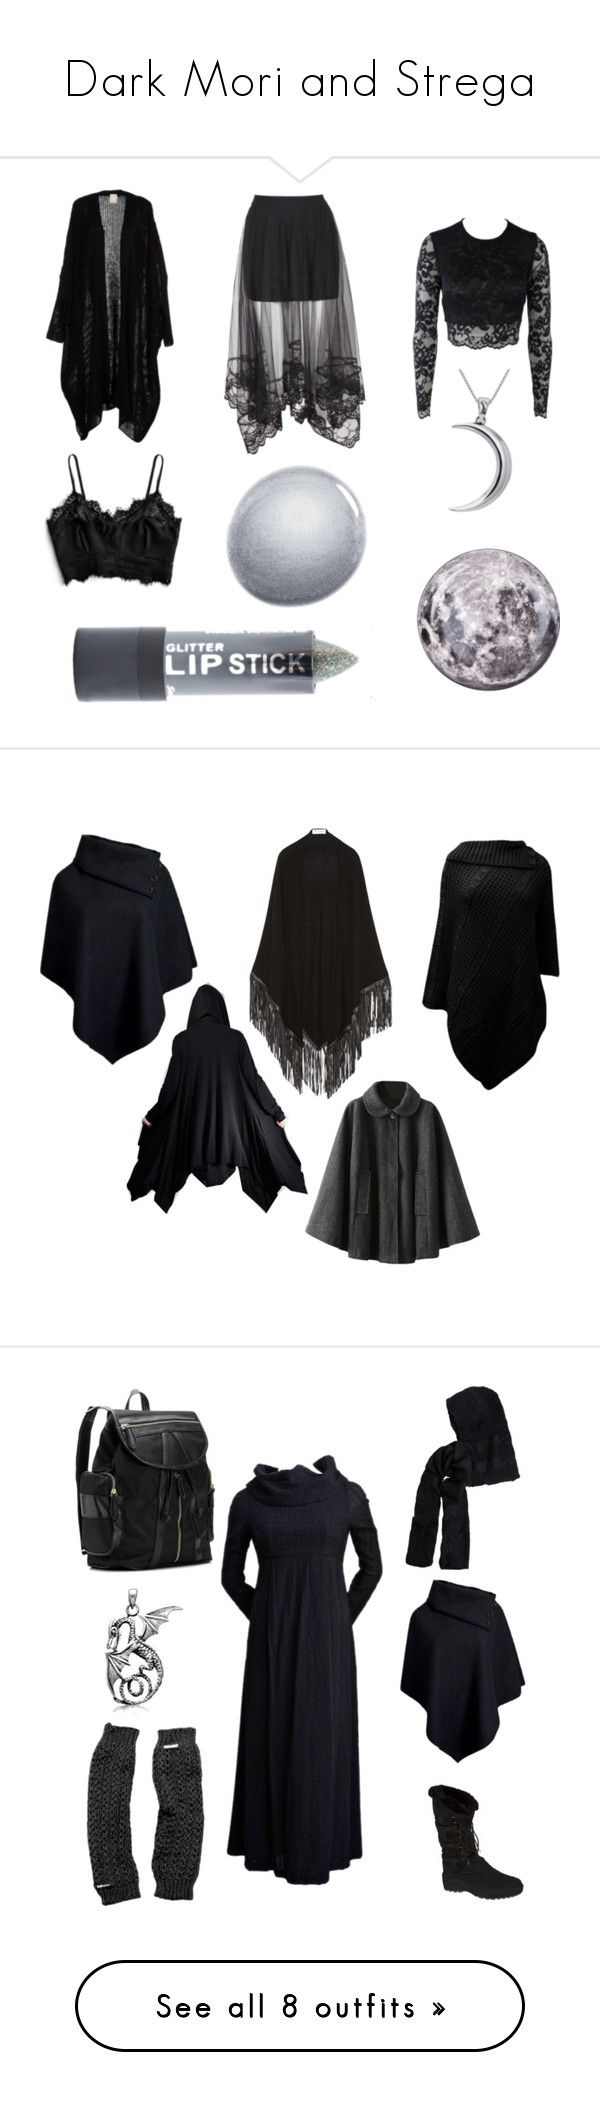 """Dark Mori and Strega"" by yasmeenscales ❤ liked on Polyvore featuring Bec & Bridge, NARS Cosmetics, Stargazer, Carolina Glamour Collection, Seletti, CO, Romeo Gigli, Pajar, Pieces and Madden Girl"